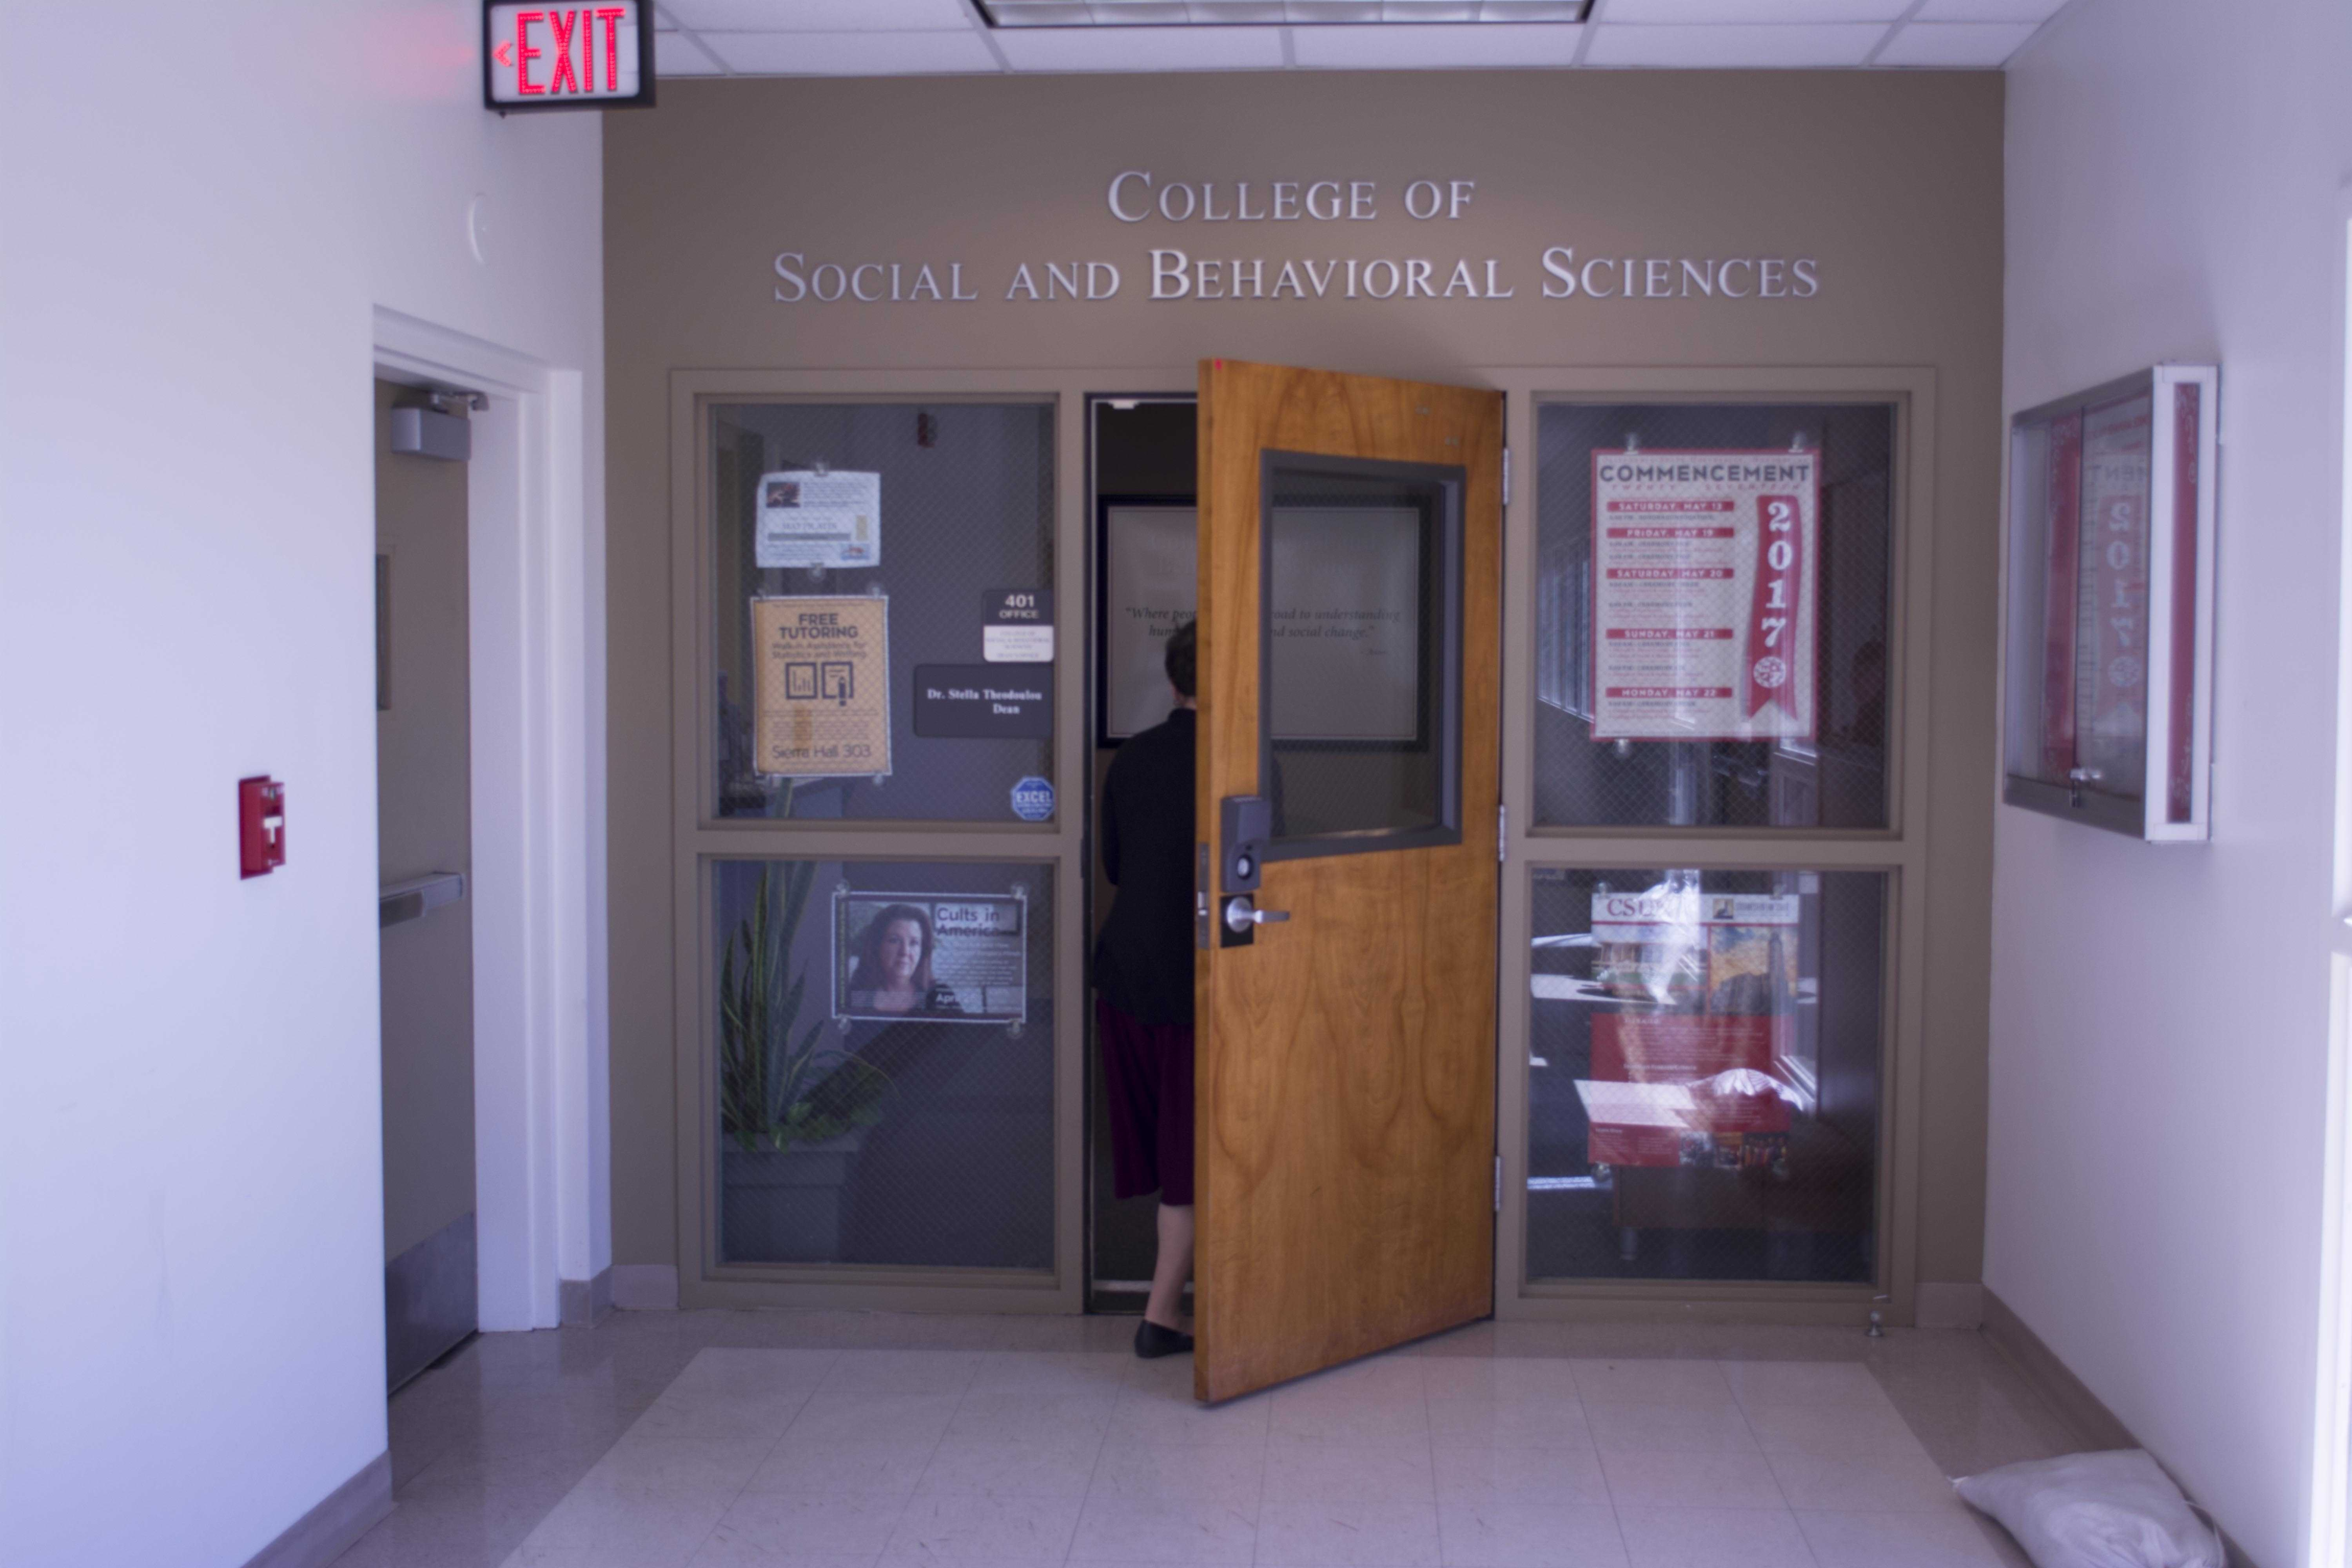 The Criminology Department falls under the College of Social and Behavioral Sciences. Photo credit: Em Pierce